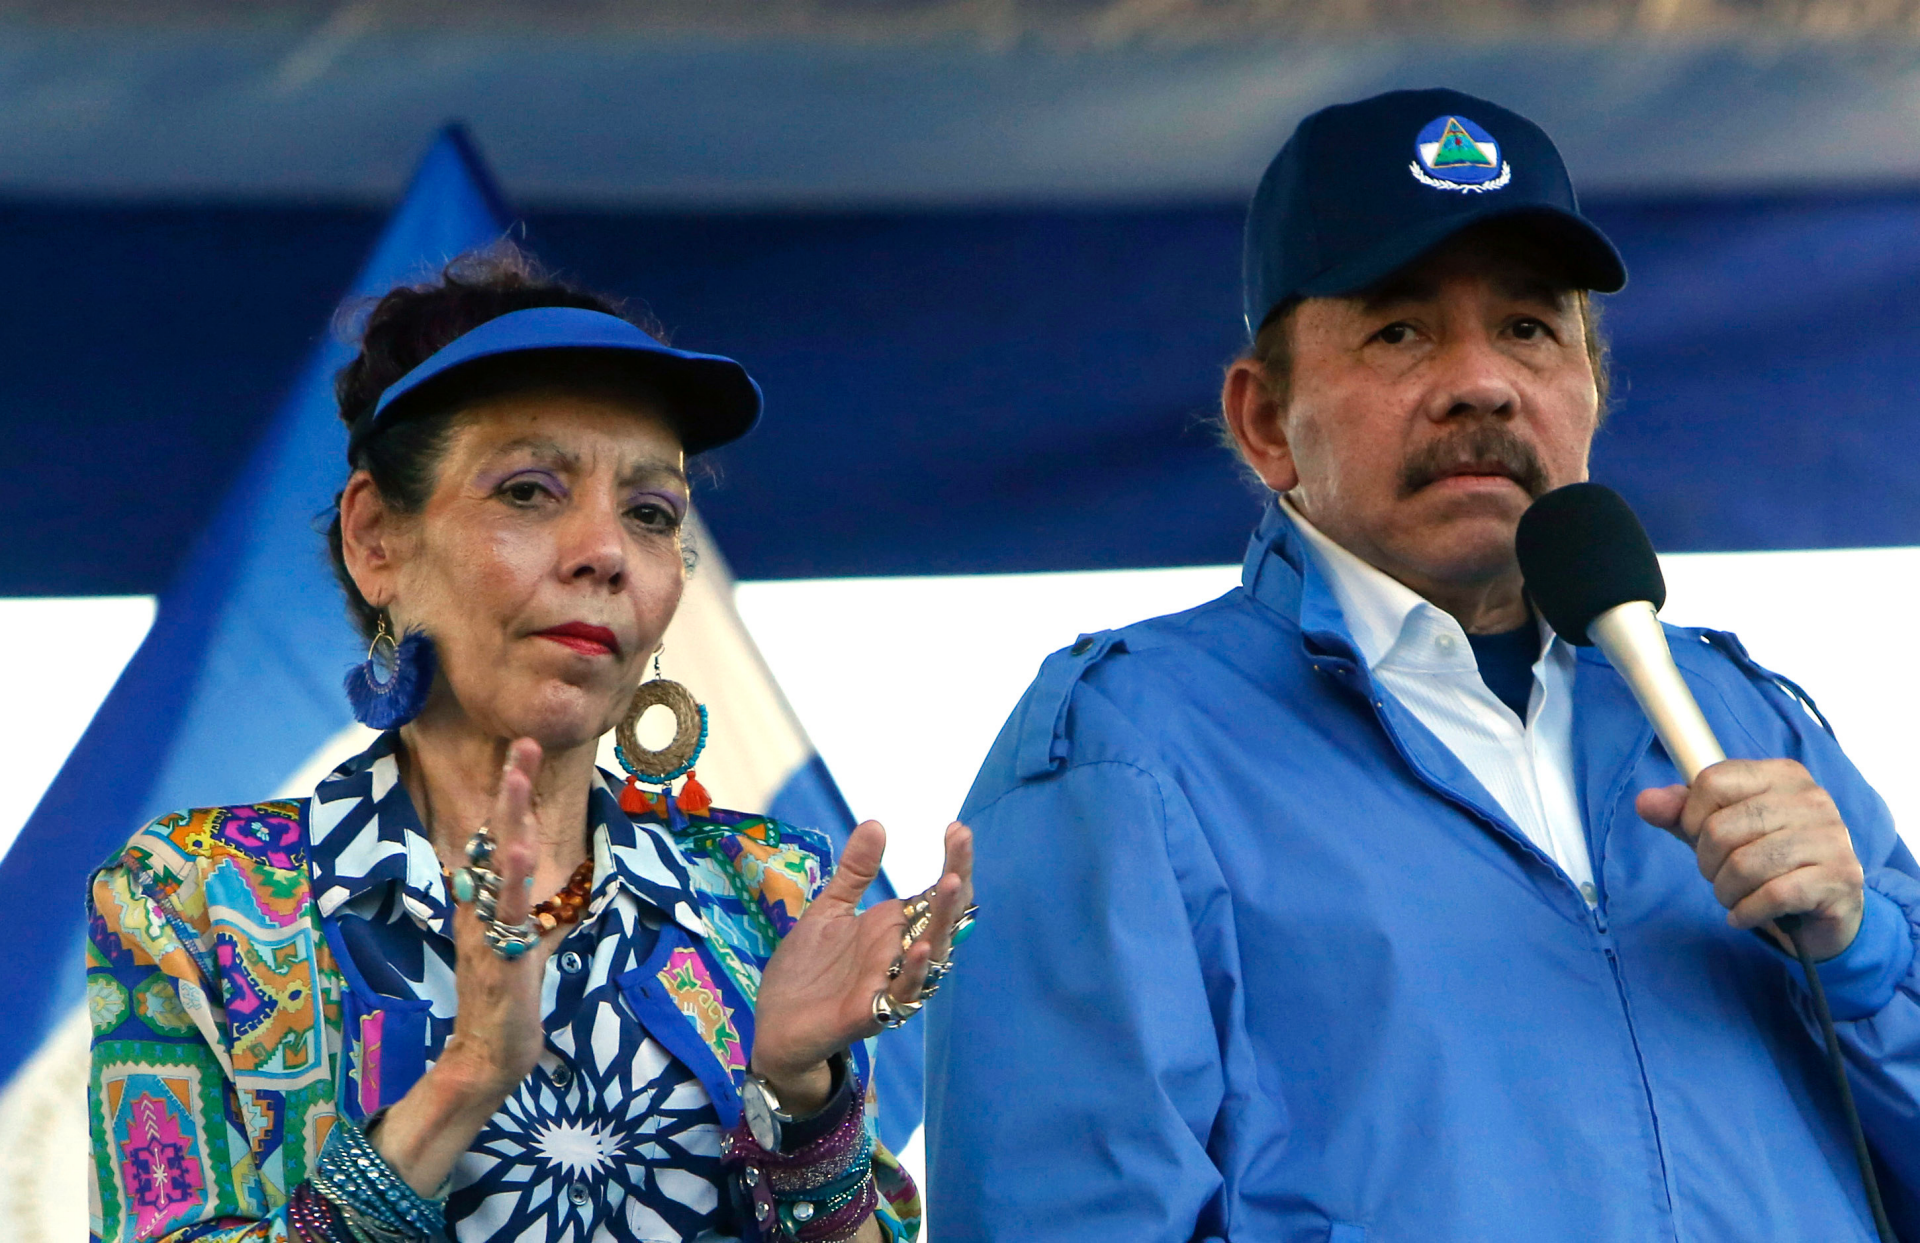 Nicaragua's Ortega says he will restart talks with opponents